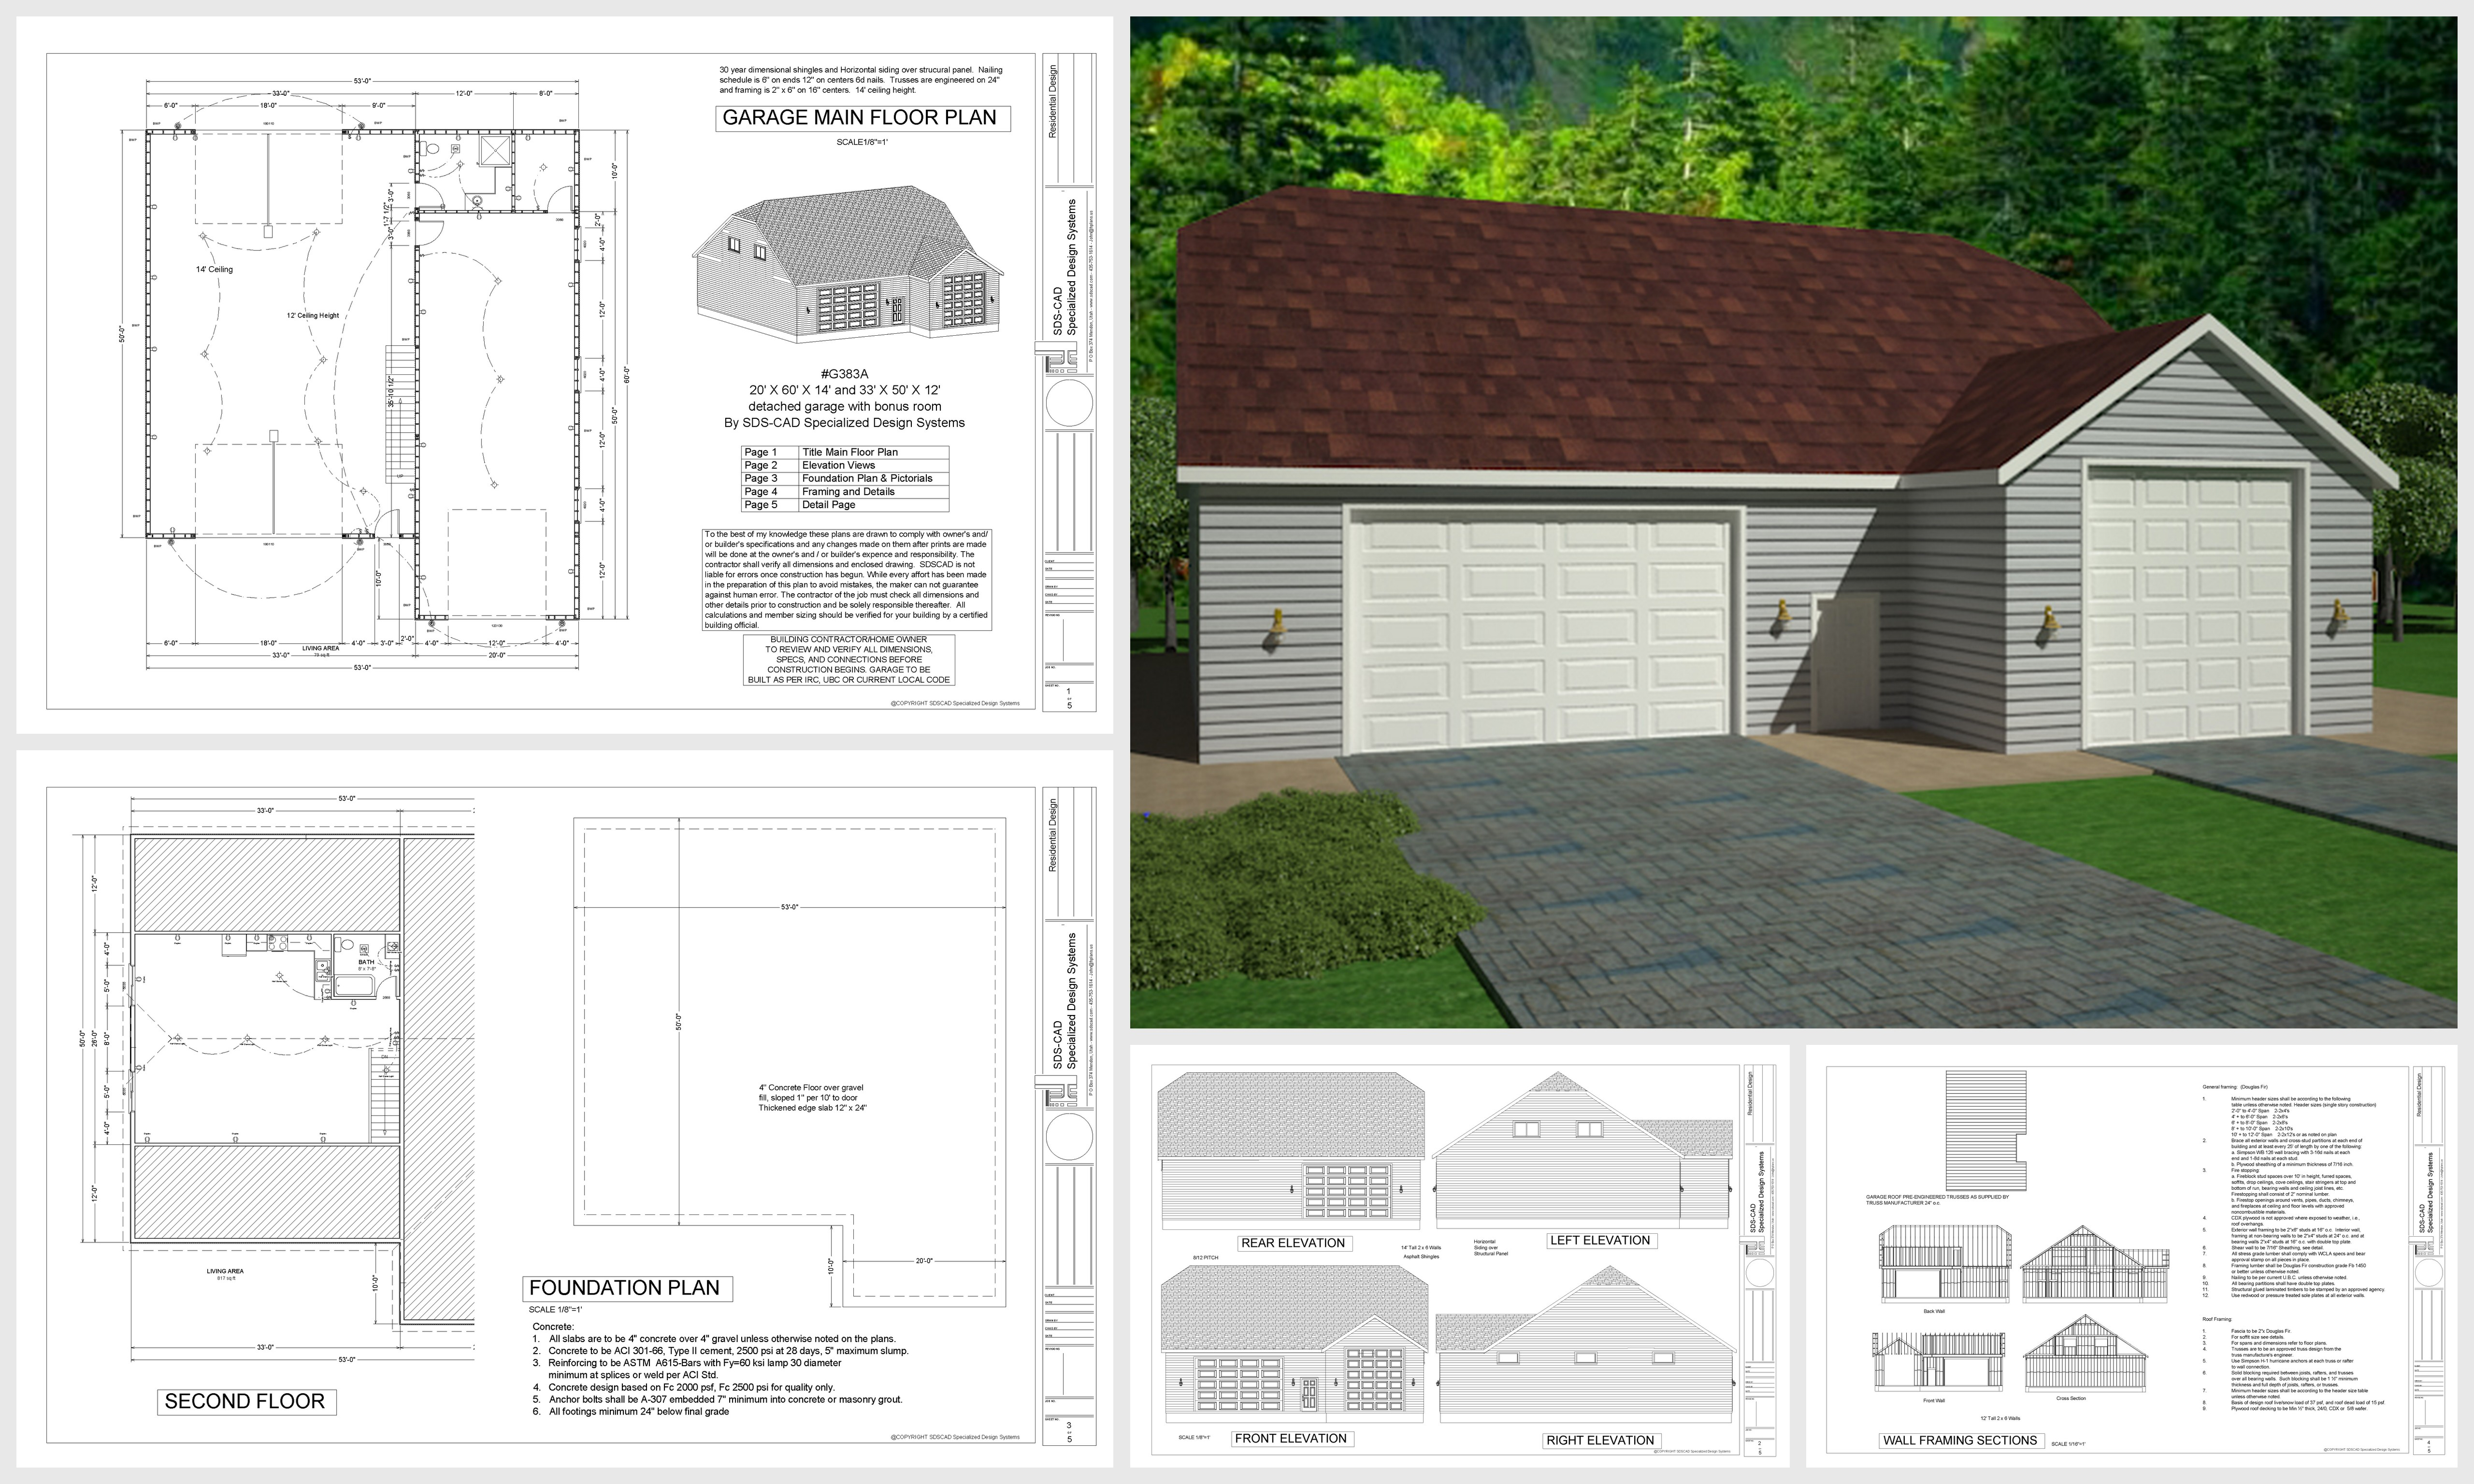 G383a 20 39 x 60 39 x 14 39 and 33 39 x 50 39 x 12 39 detached garage for 50 x 60 garage plans